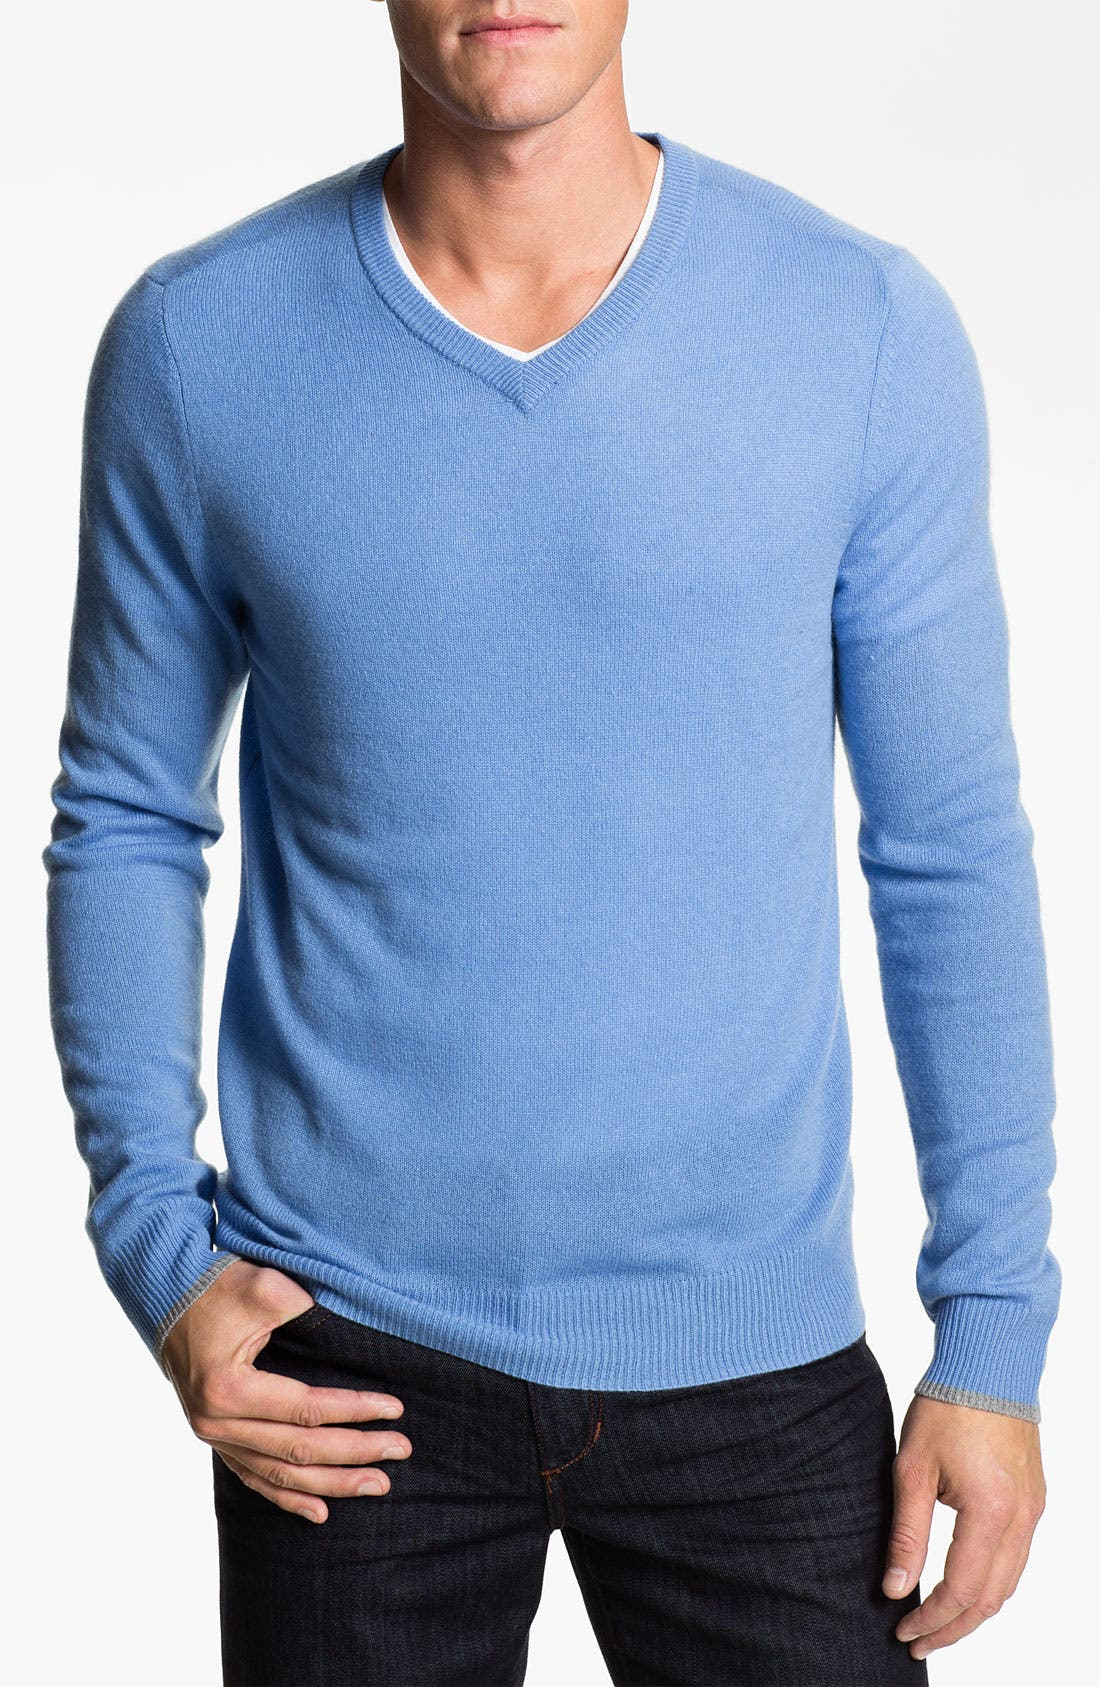 Main Image - 1901 Trim Fit V-Neck Cashmere Sweater